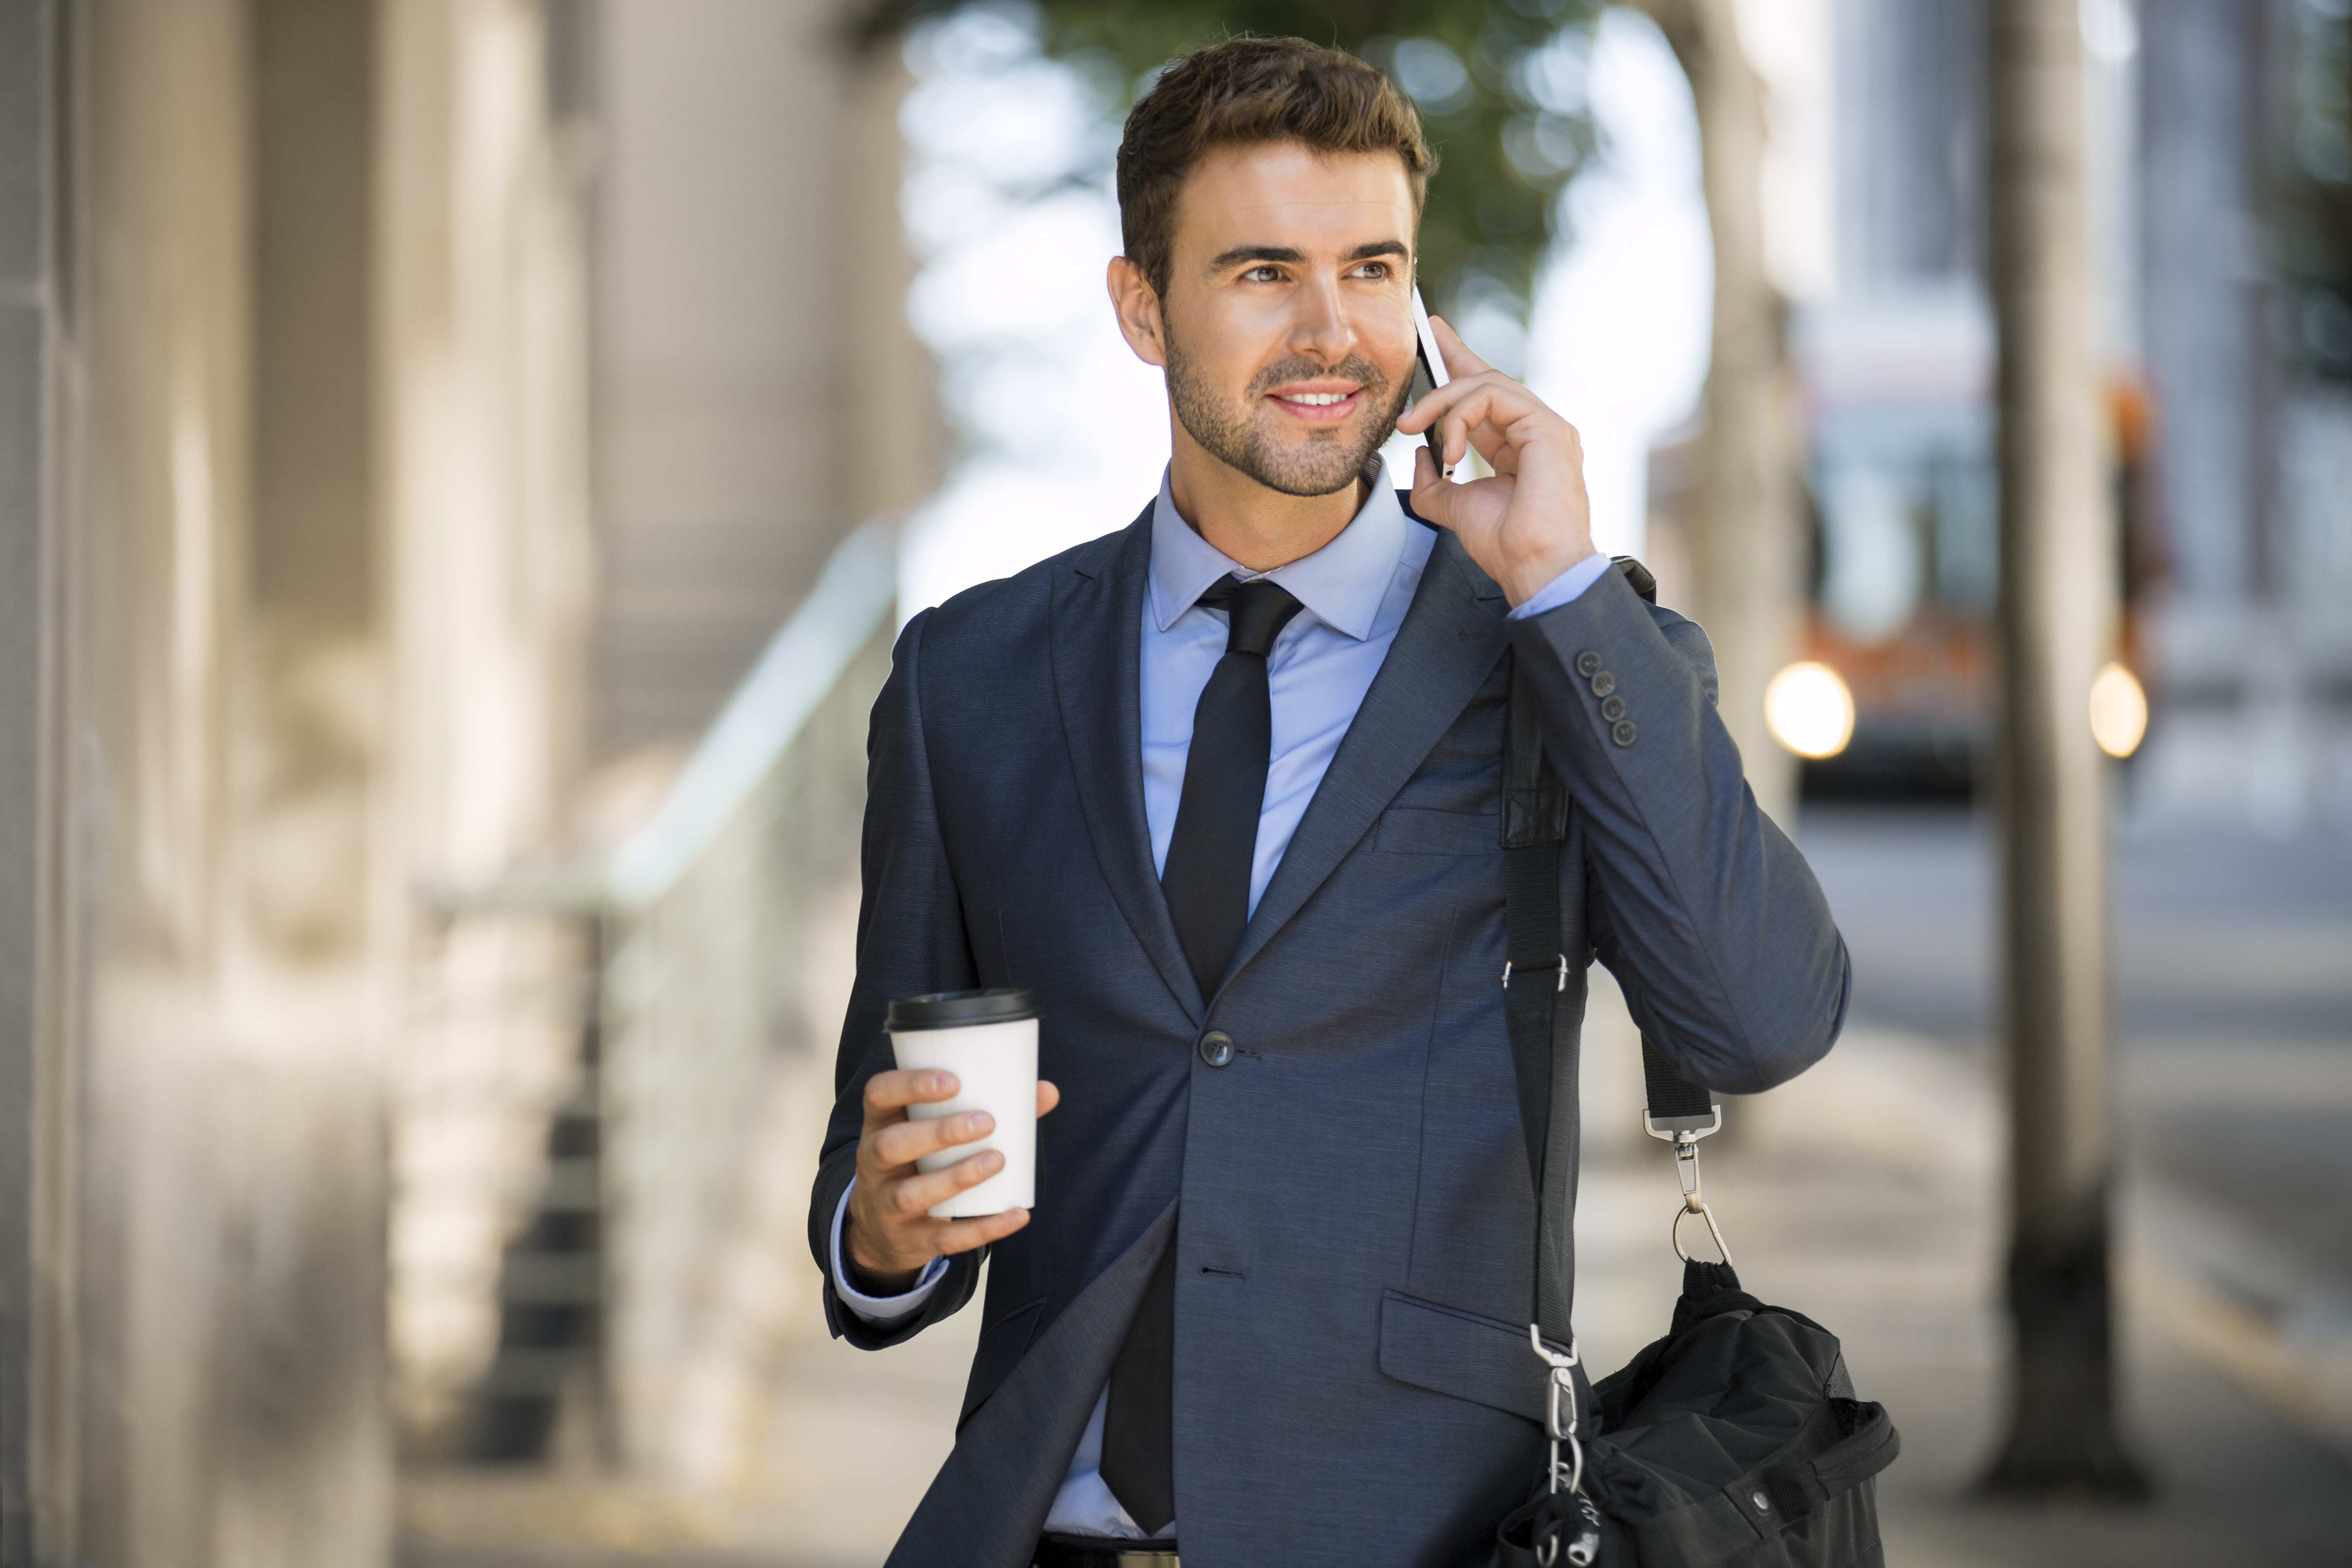 Image: Male, guy, face, smile, phone, style, suit, coat, coffee сup, street